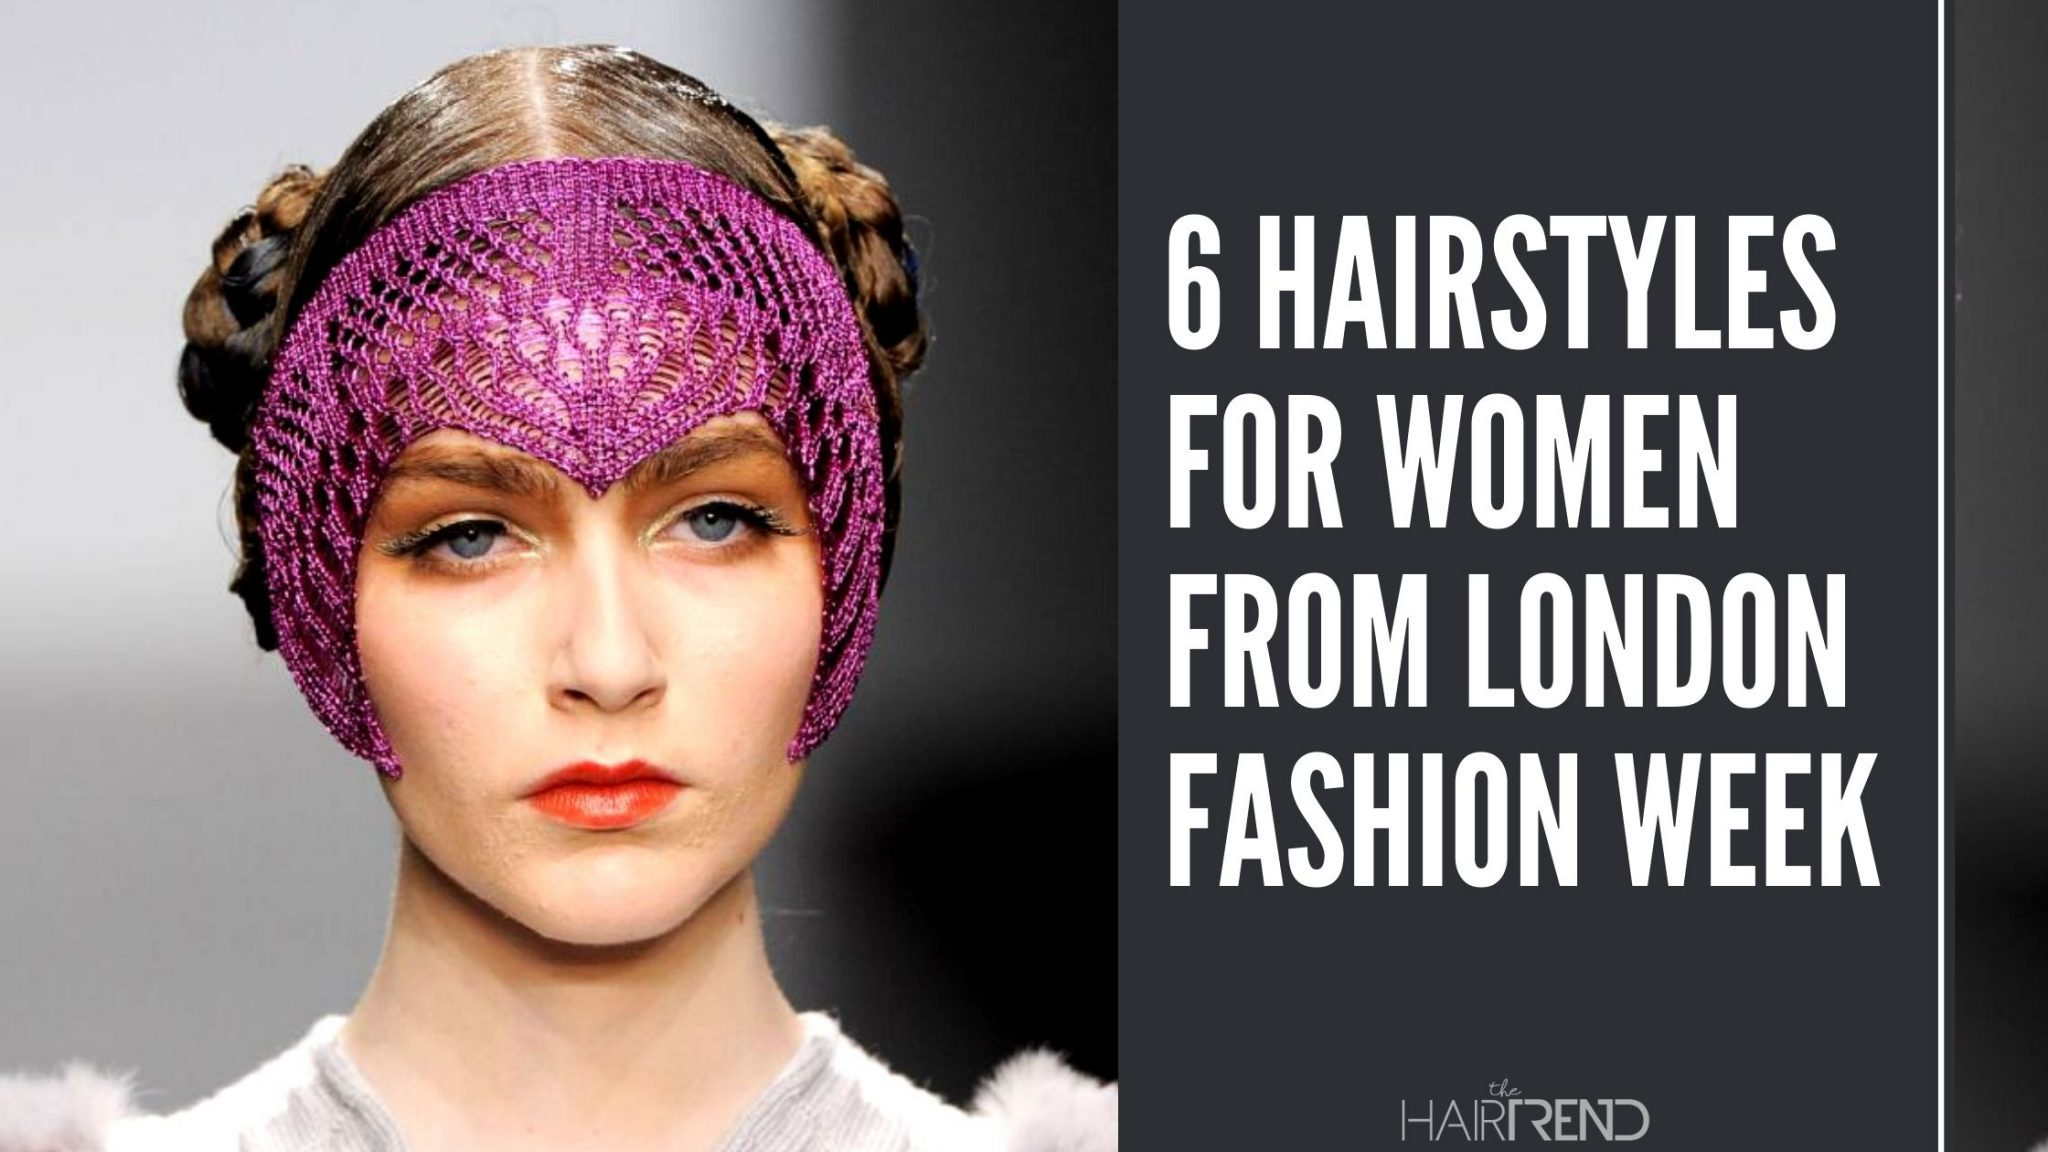 6 Hairstyles For Women From London Fashion Week